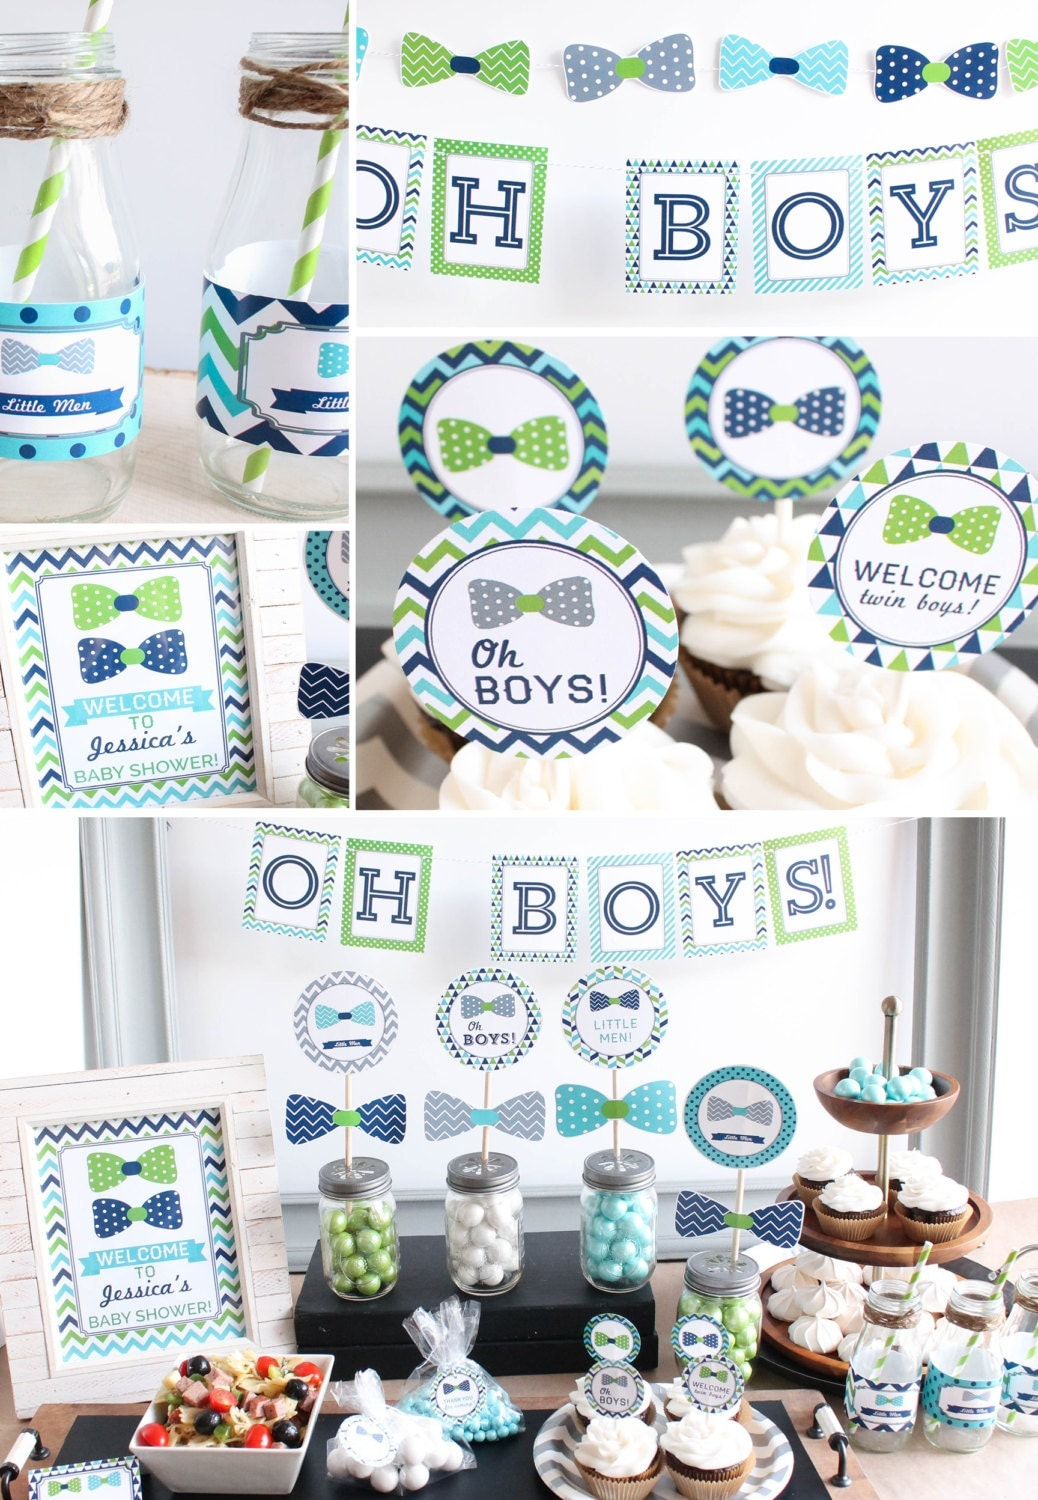 Twin boys baby shower decorations bow tie lime green navy for Baby shower decoration ideas for twin boys